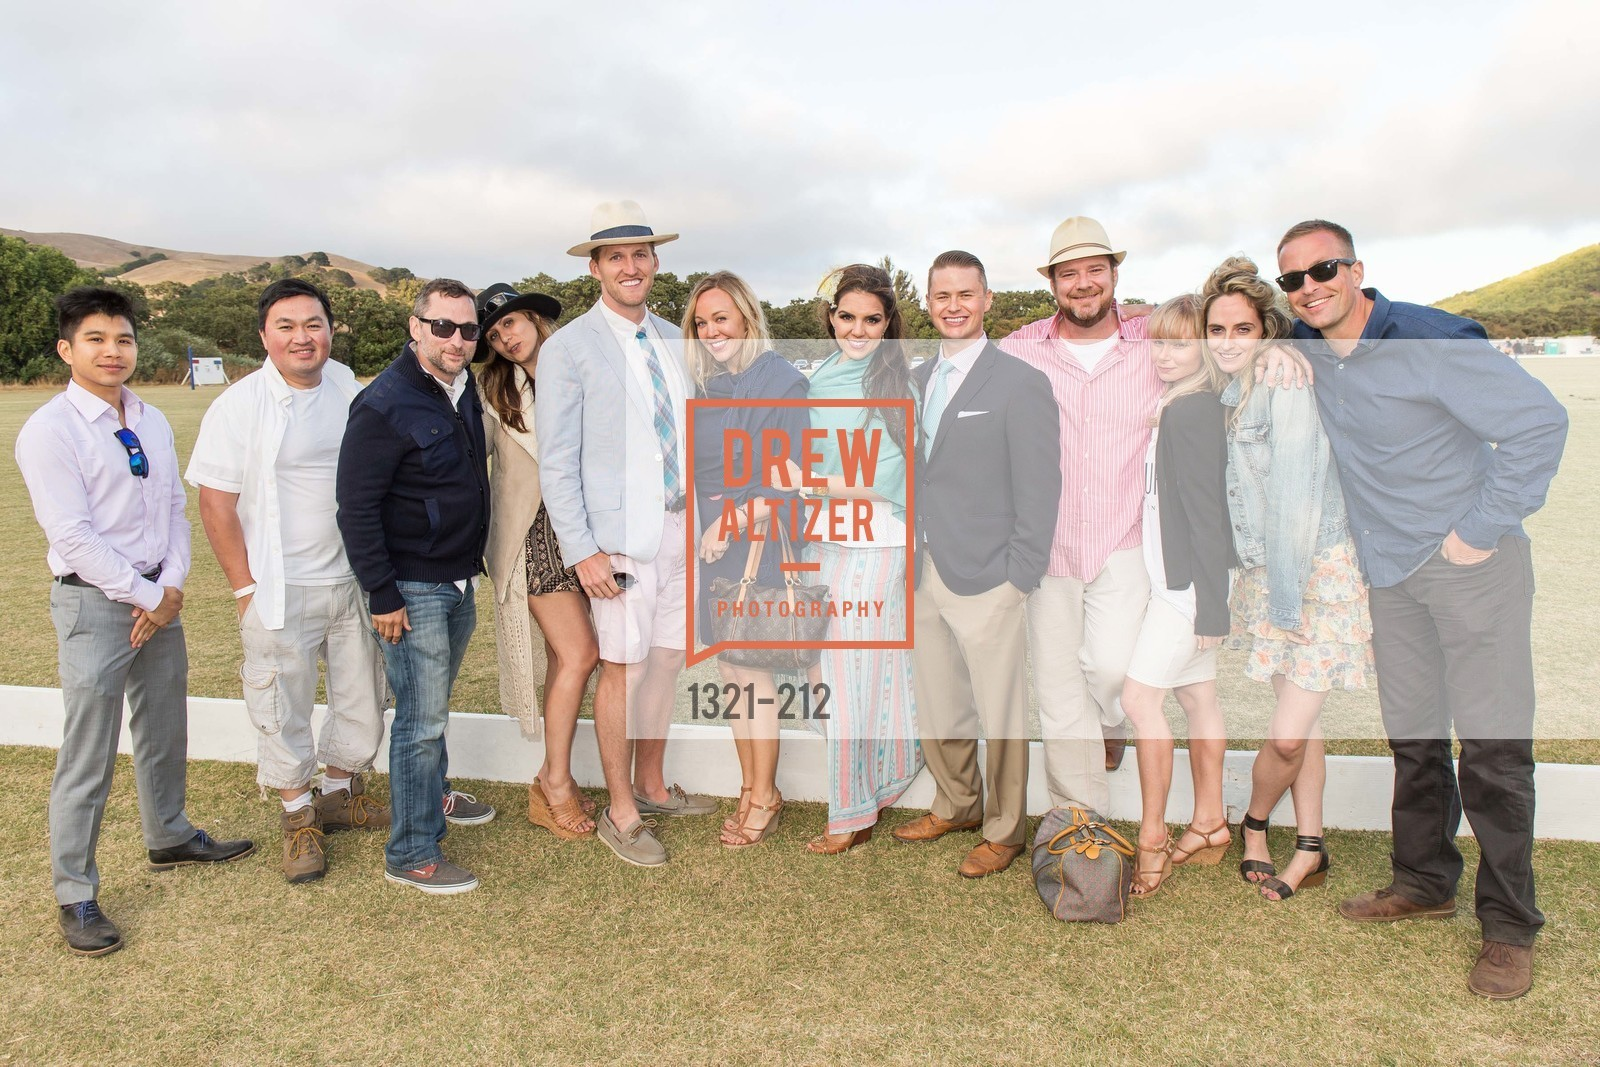 Jen Bradburn, Austin Broyles, Anjou Ahlborn, Neil Kay, Stick & Ball Oyster Cup Polo Tournament, Cerro Pampa Polo Club, July 25th, 2015,Drew Altizer, Drew Altizer Photography, full-service agency, private events, San Francisco photographer, photographer california